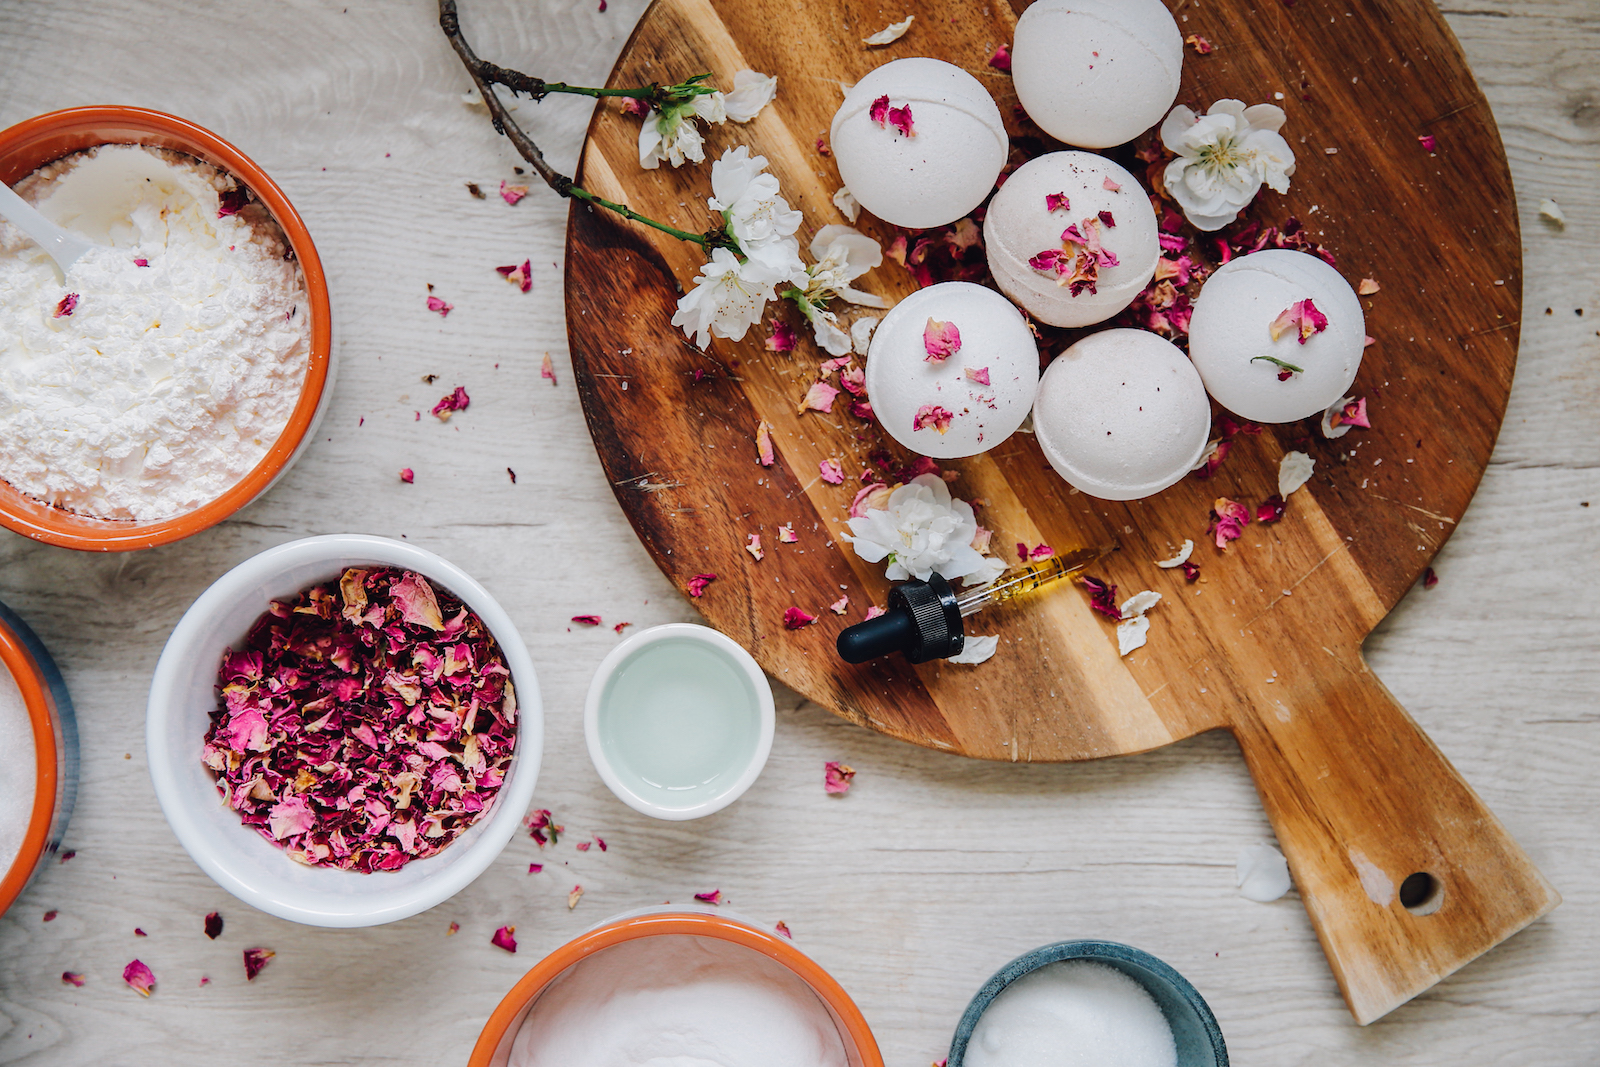 CBD Infused Bath Bombs Should Be Your Next DIY Project